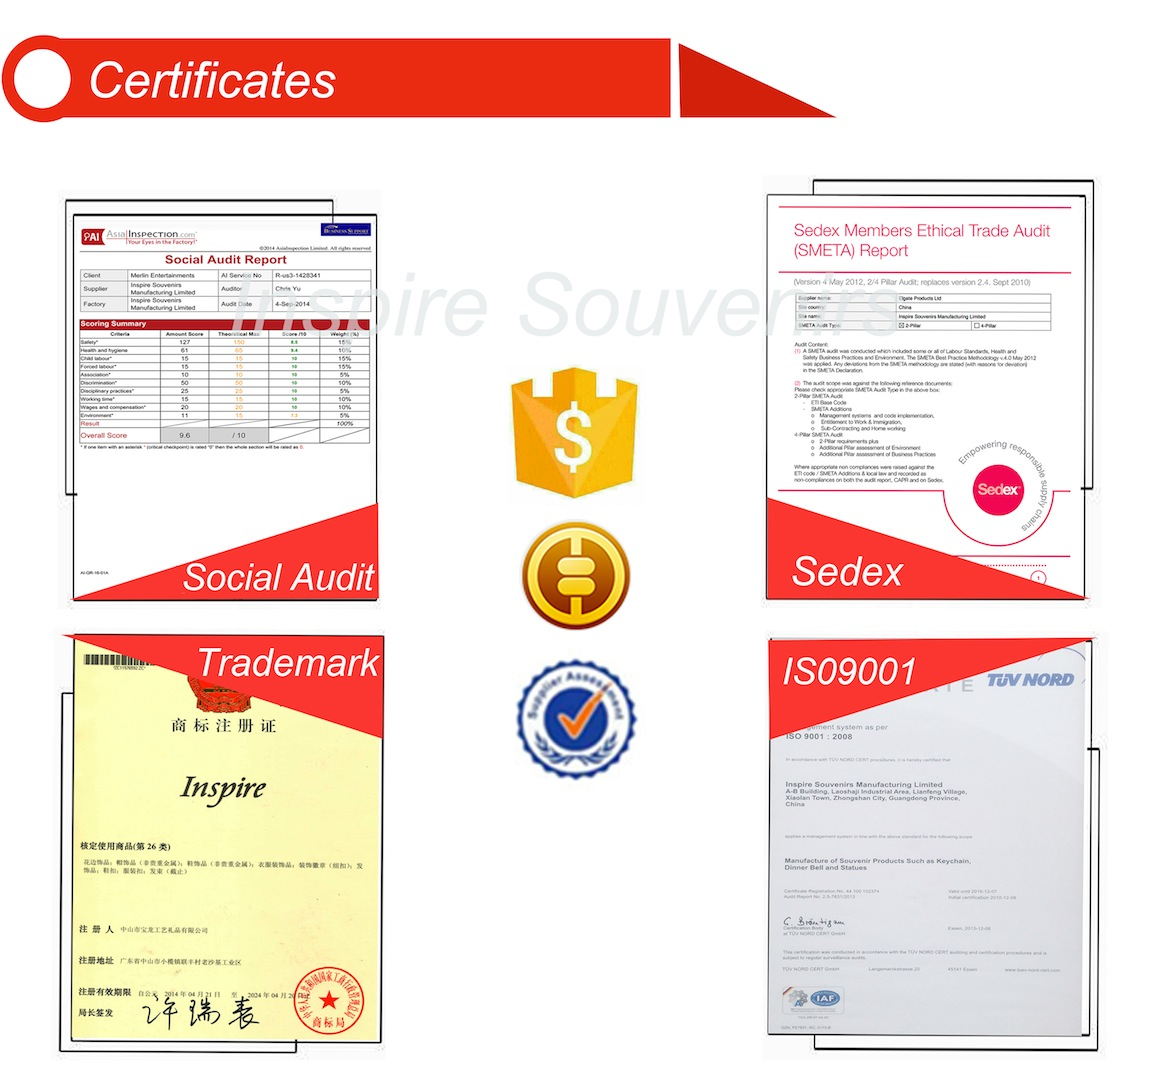 Inspire Souvenirs Manufacturing Ltd - Certification of our company